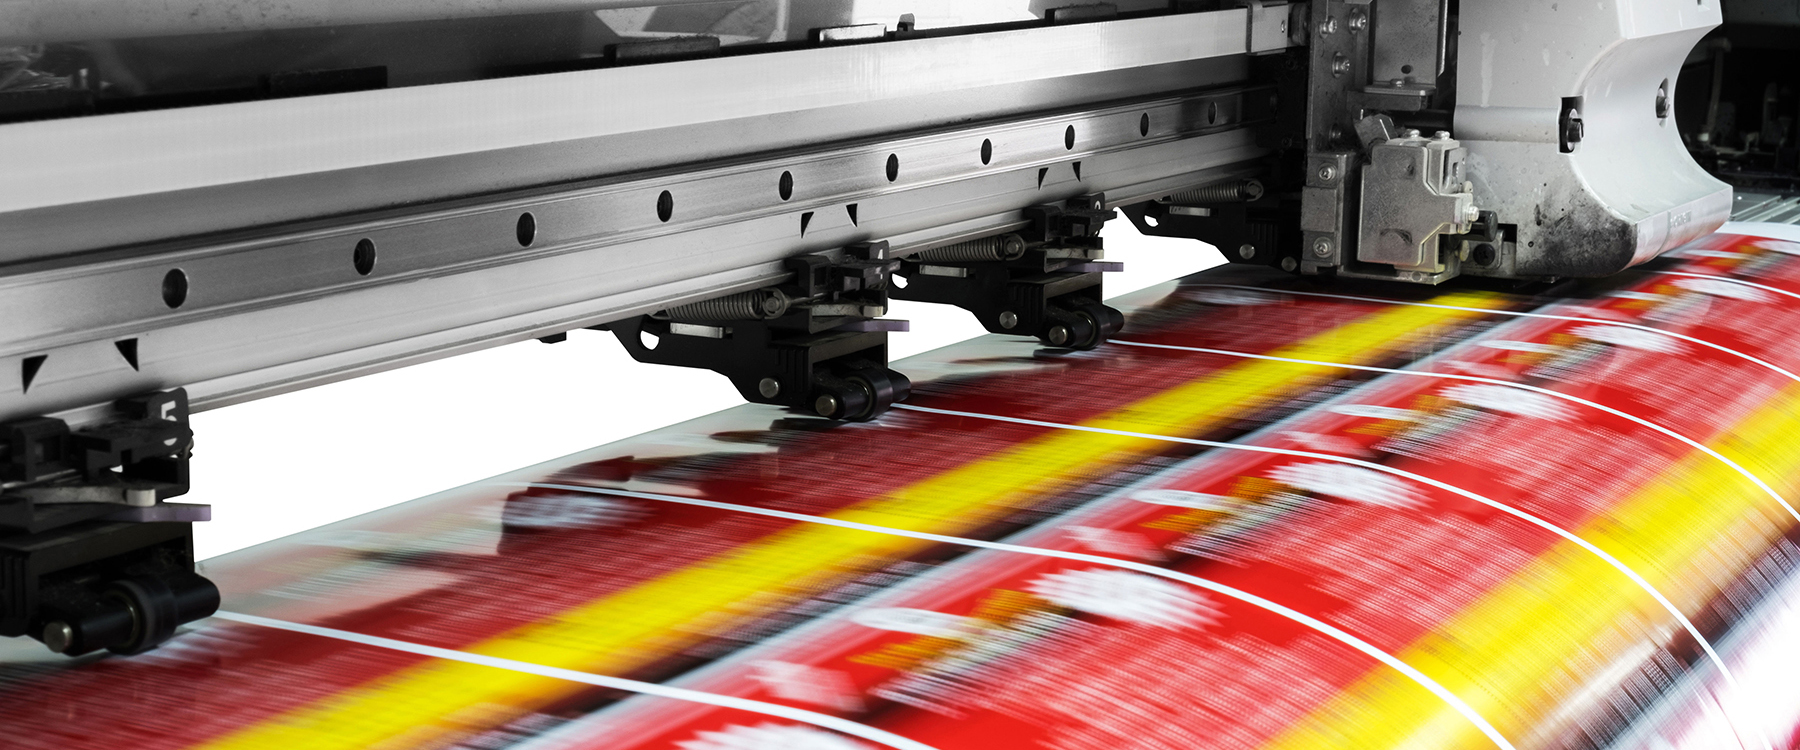 Print publishing with product master data management - product mdm - product information management